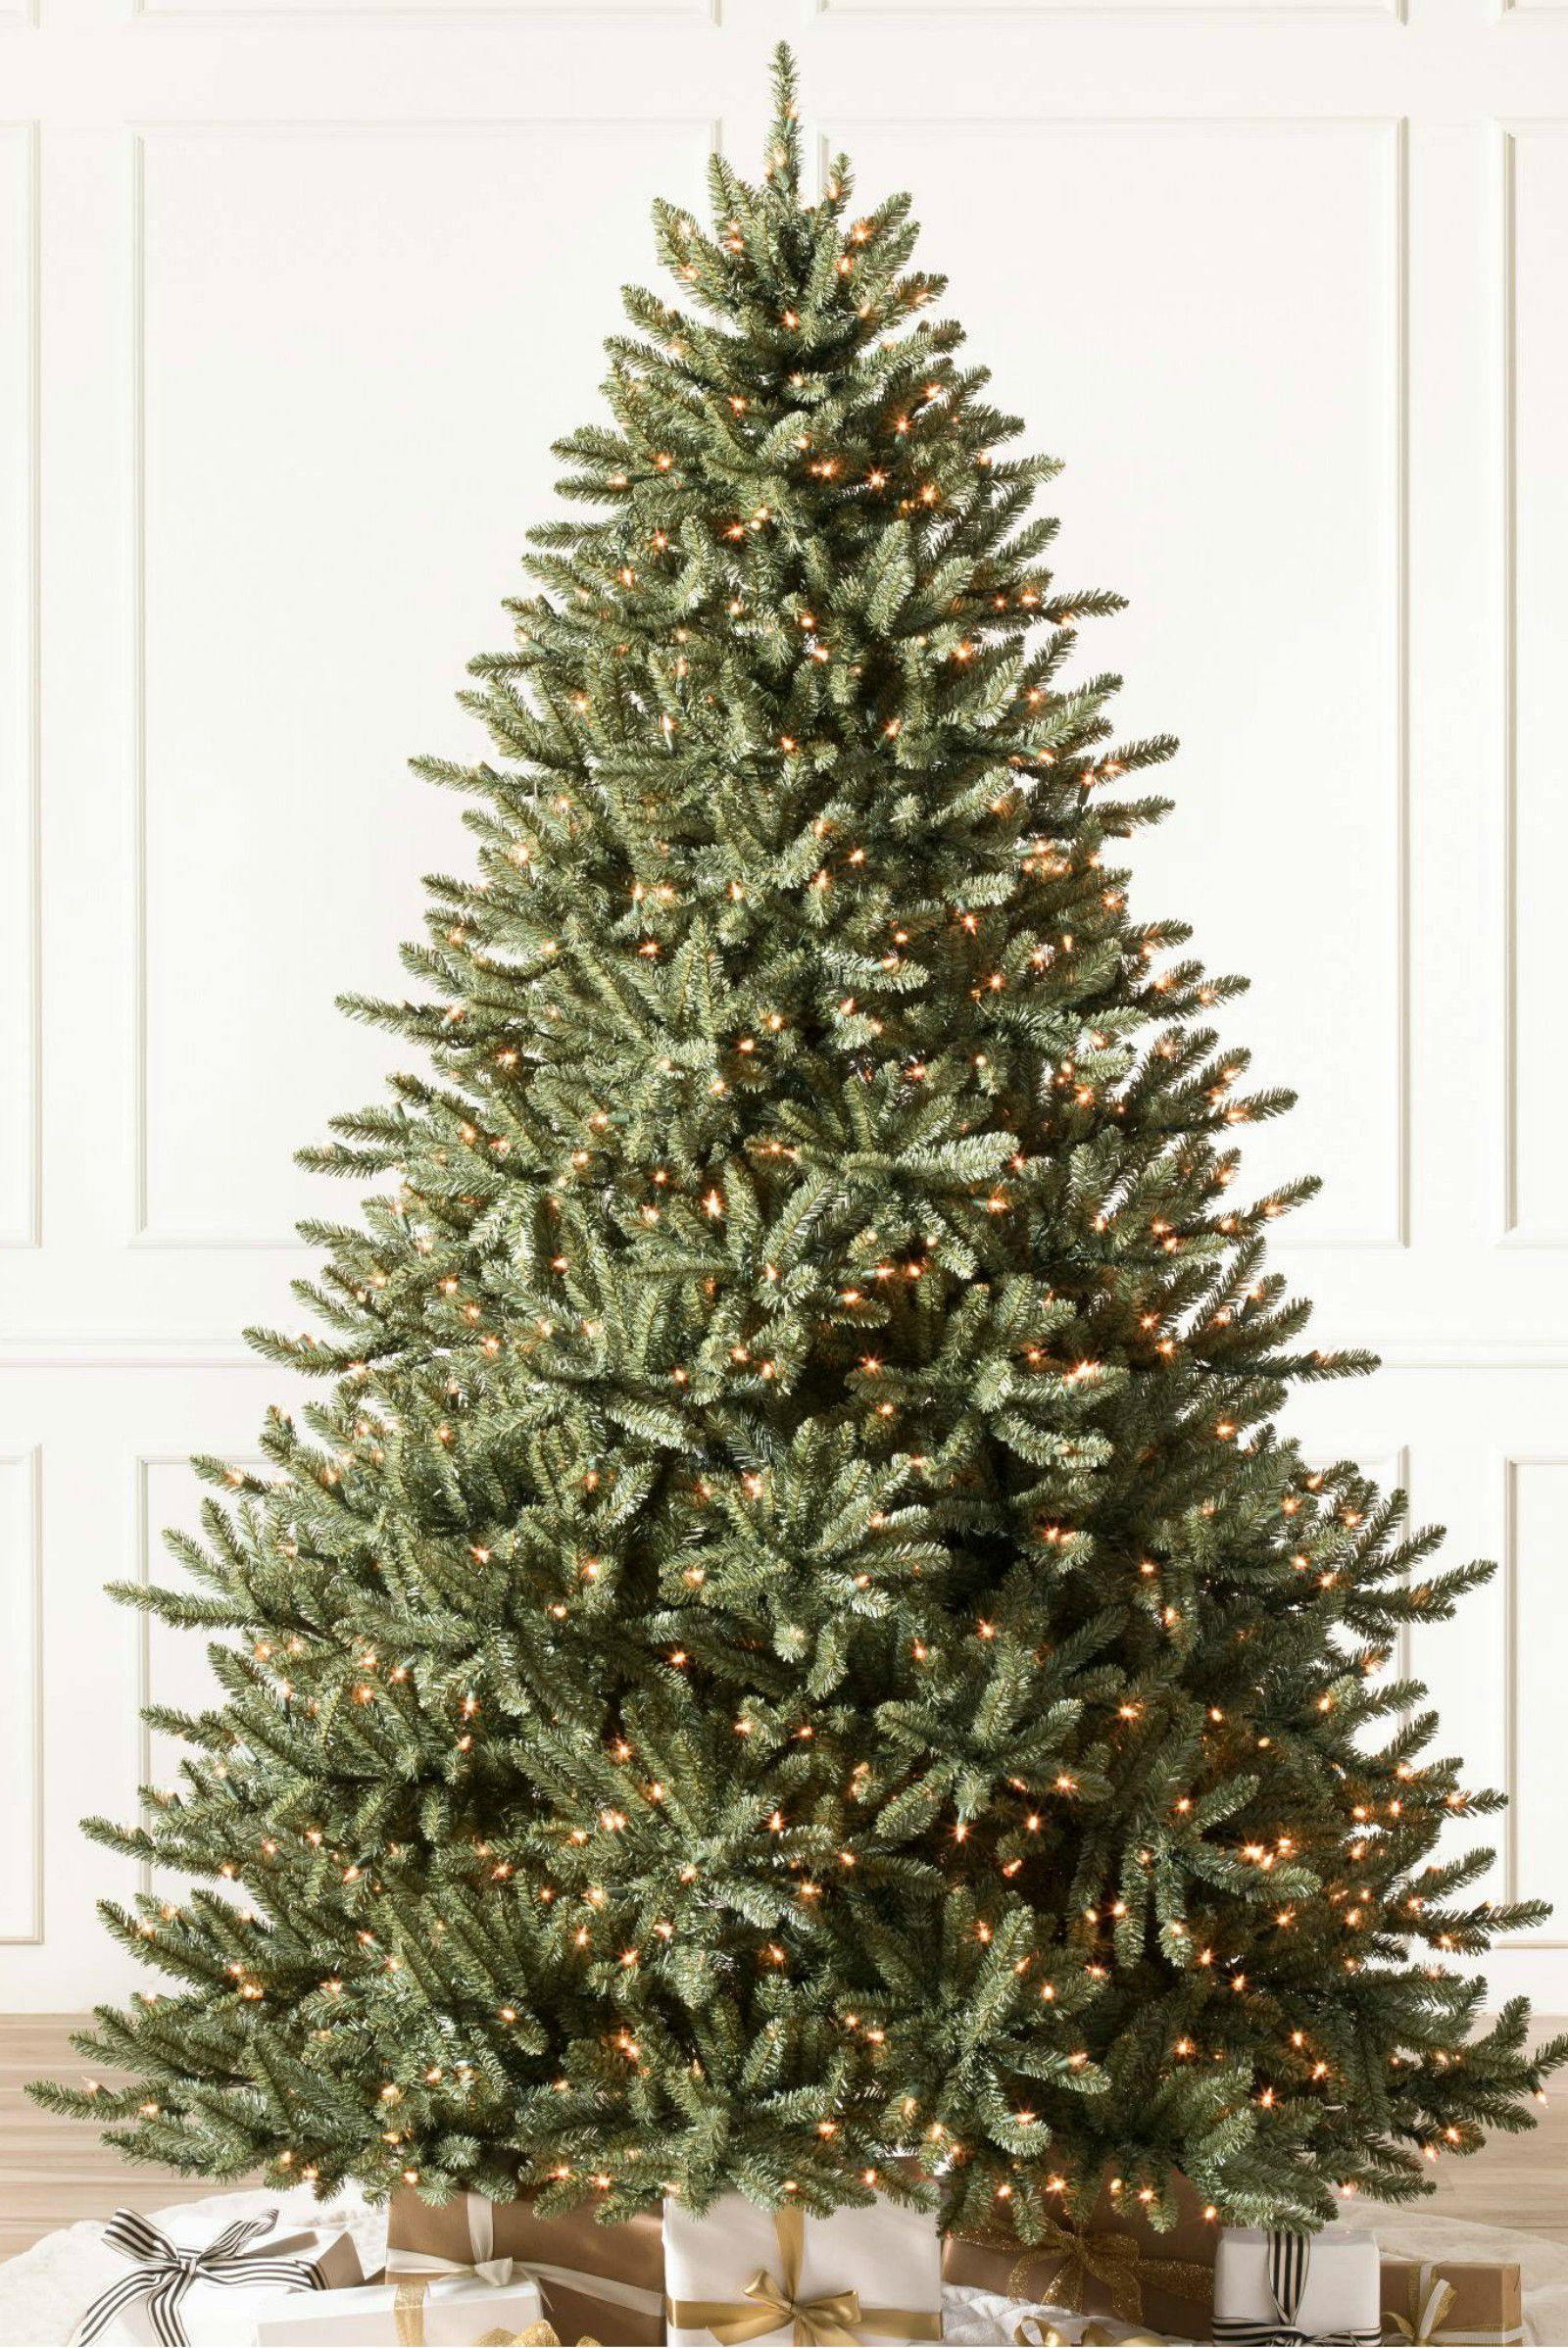 Christmas Tree 24 Best Artificial Christmas Trees   Where to Buy Fake Christmas Trees